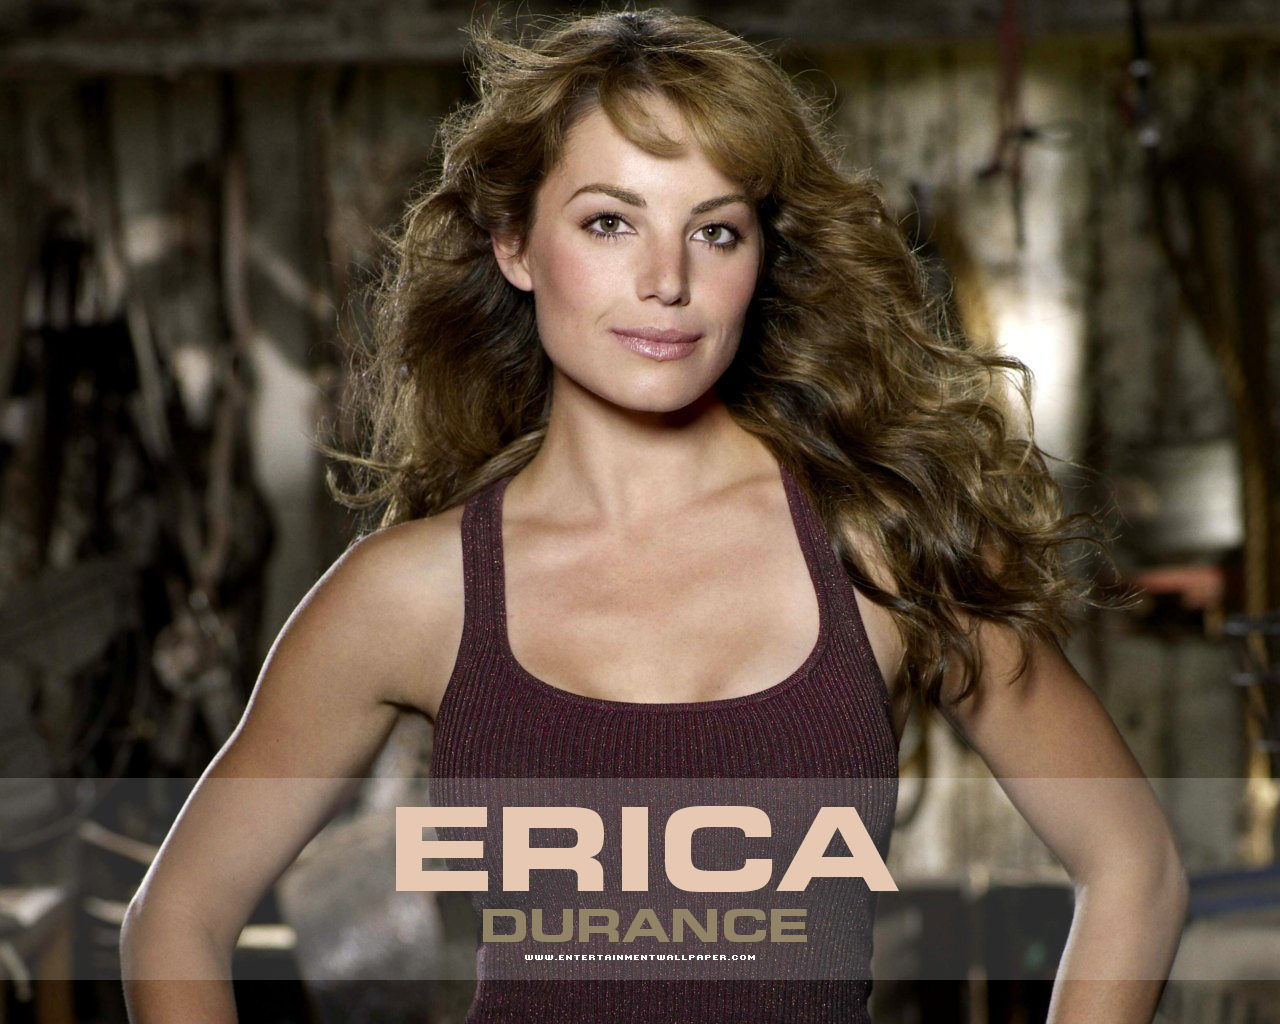 erica durance images wallpaper - photo #26